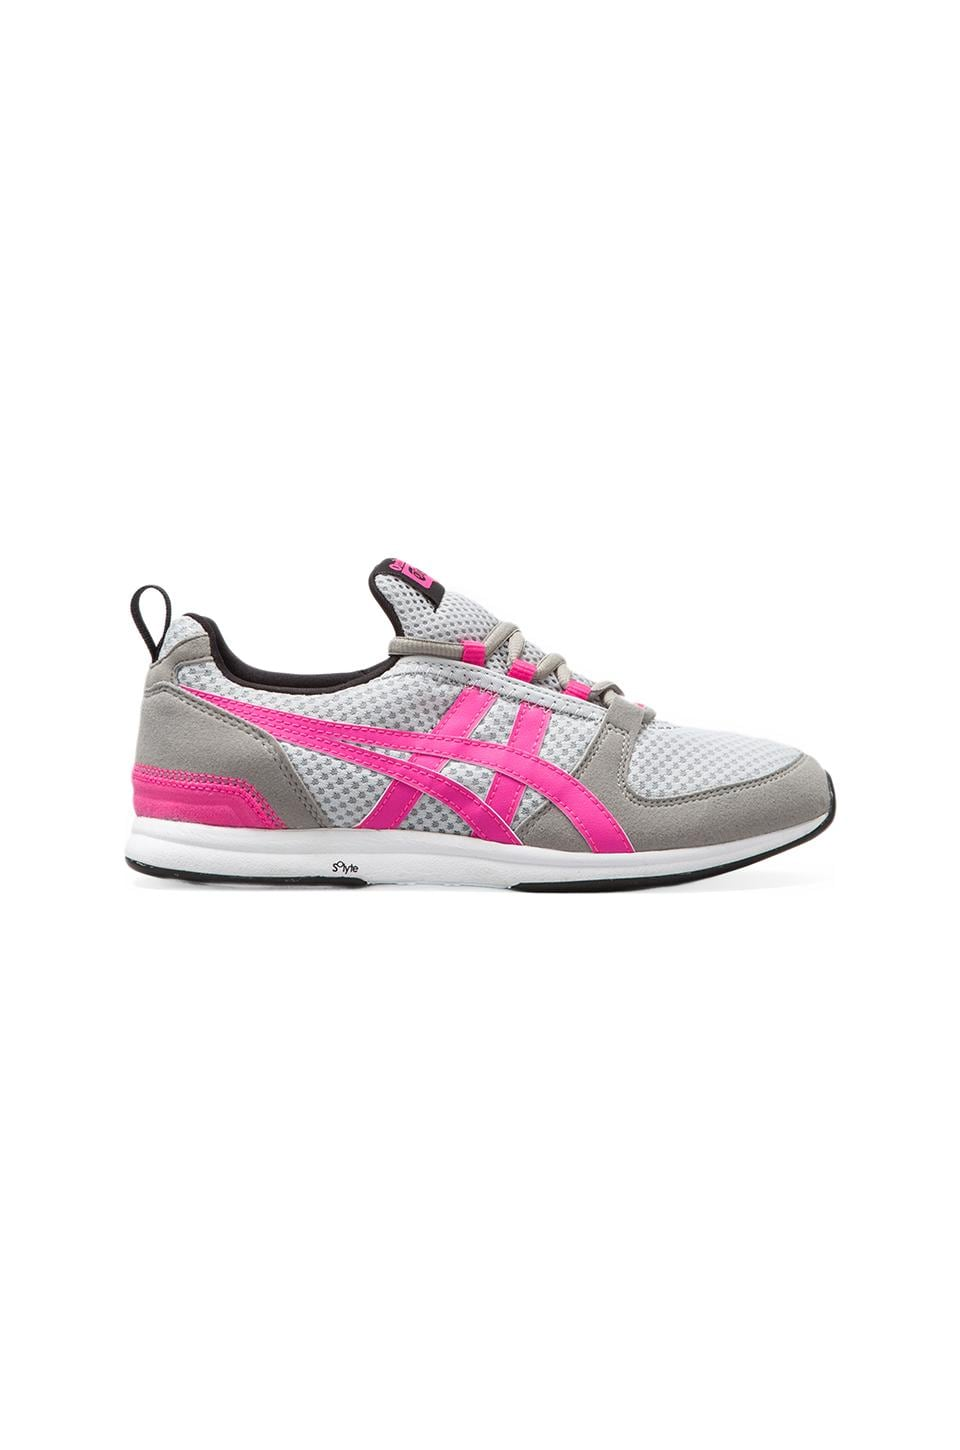 Onitsuka Tiger Ult-Racer in Light Grey/Pink